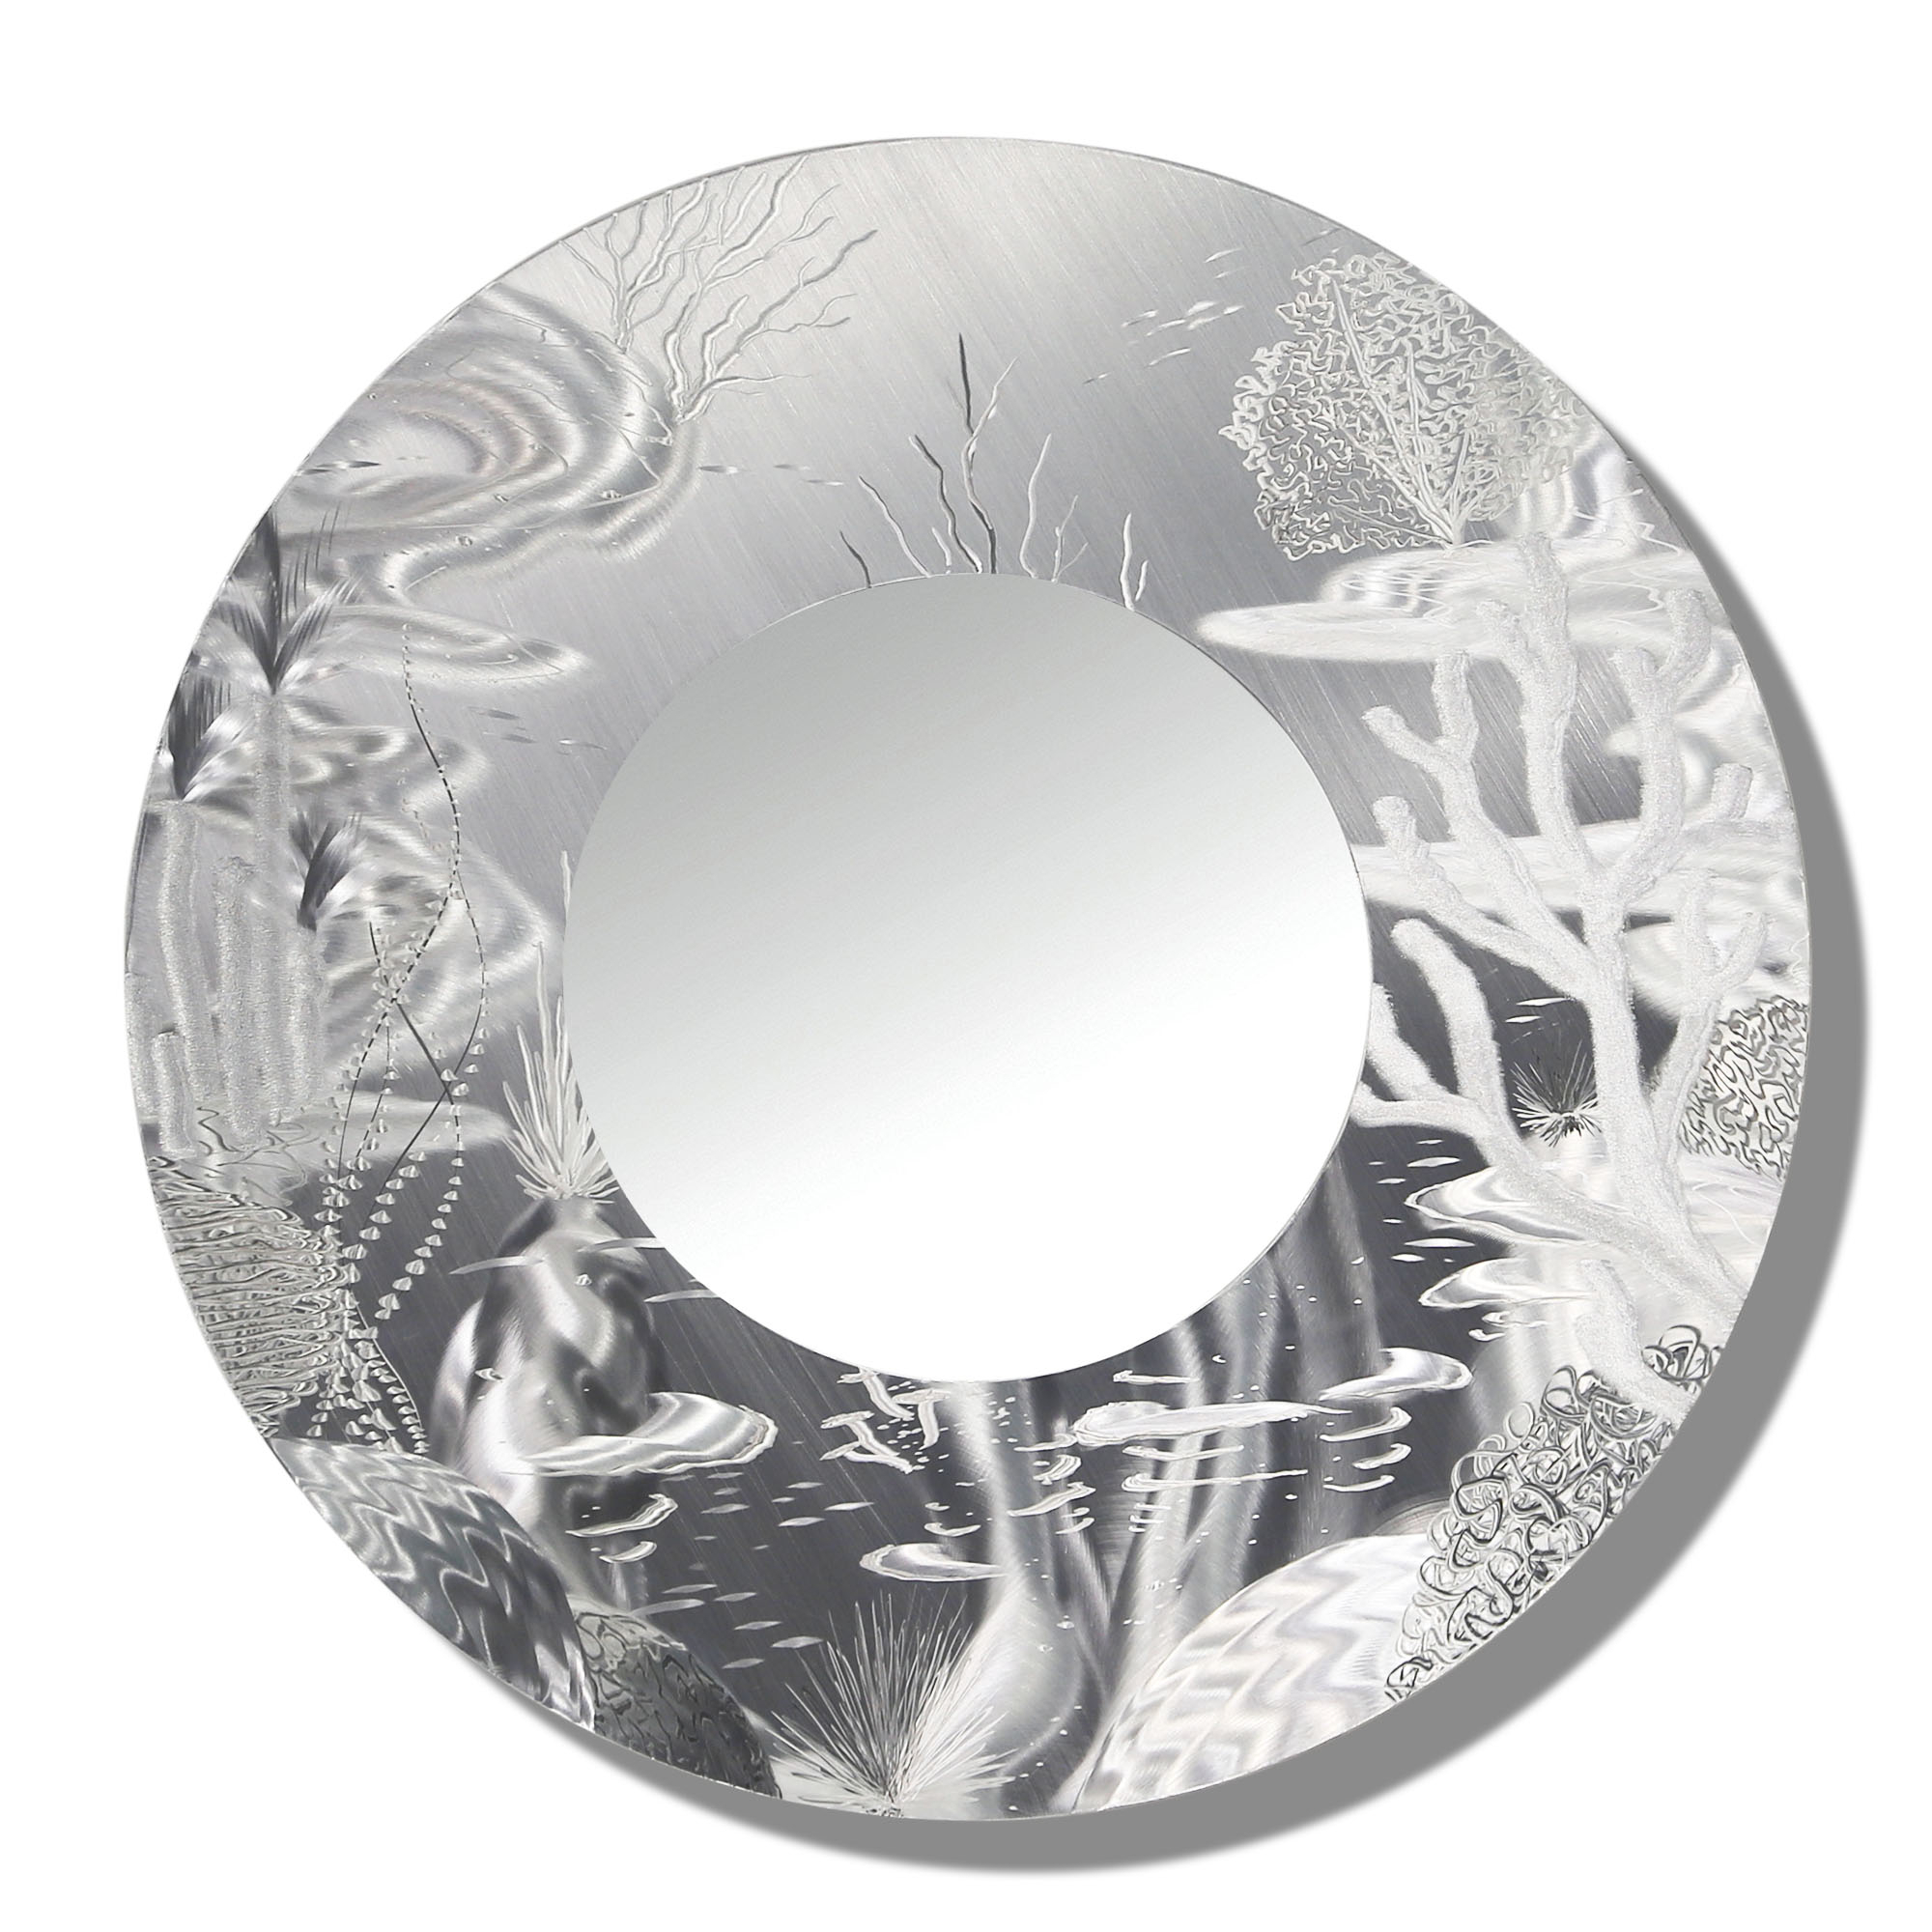 Most Recent Mirror 102 – All Natural Silver Abstract Marine Life Circle Wall Mirror – Modern Metal Wall Accent Art Throughout Round Silver Wall Mirrors (View 9 of 20)